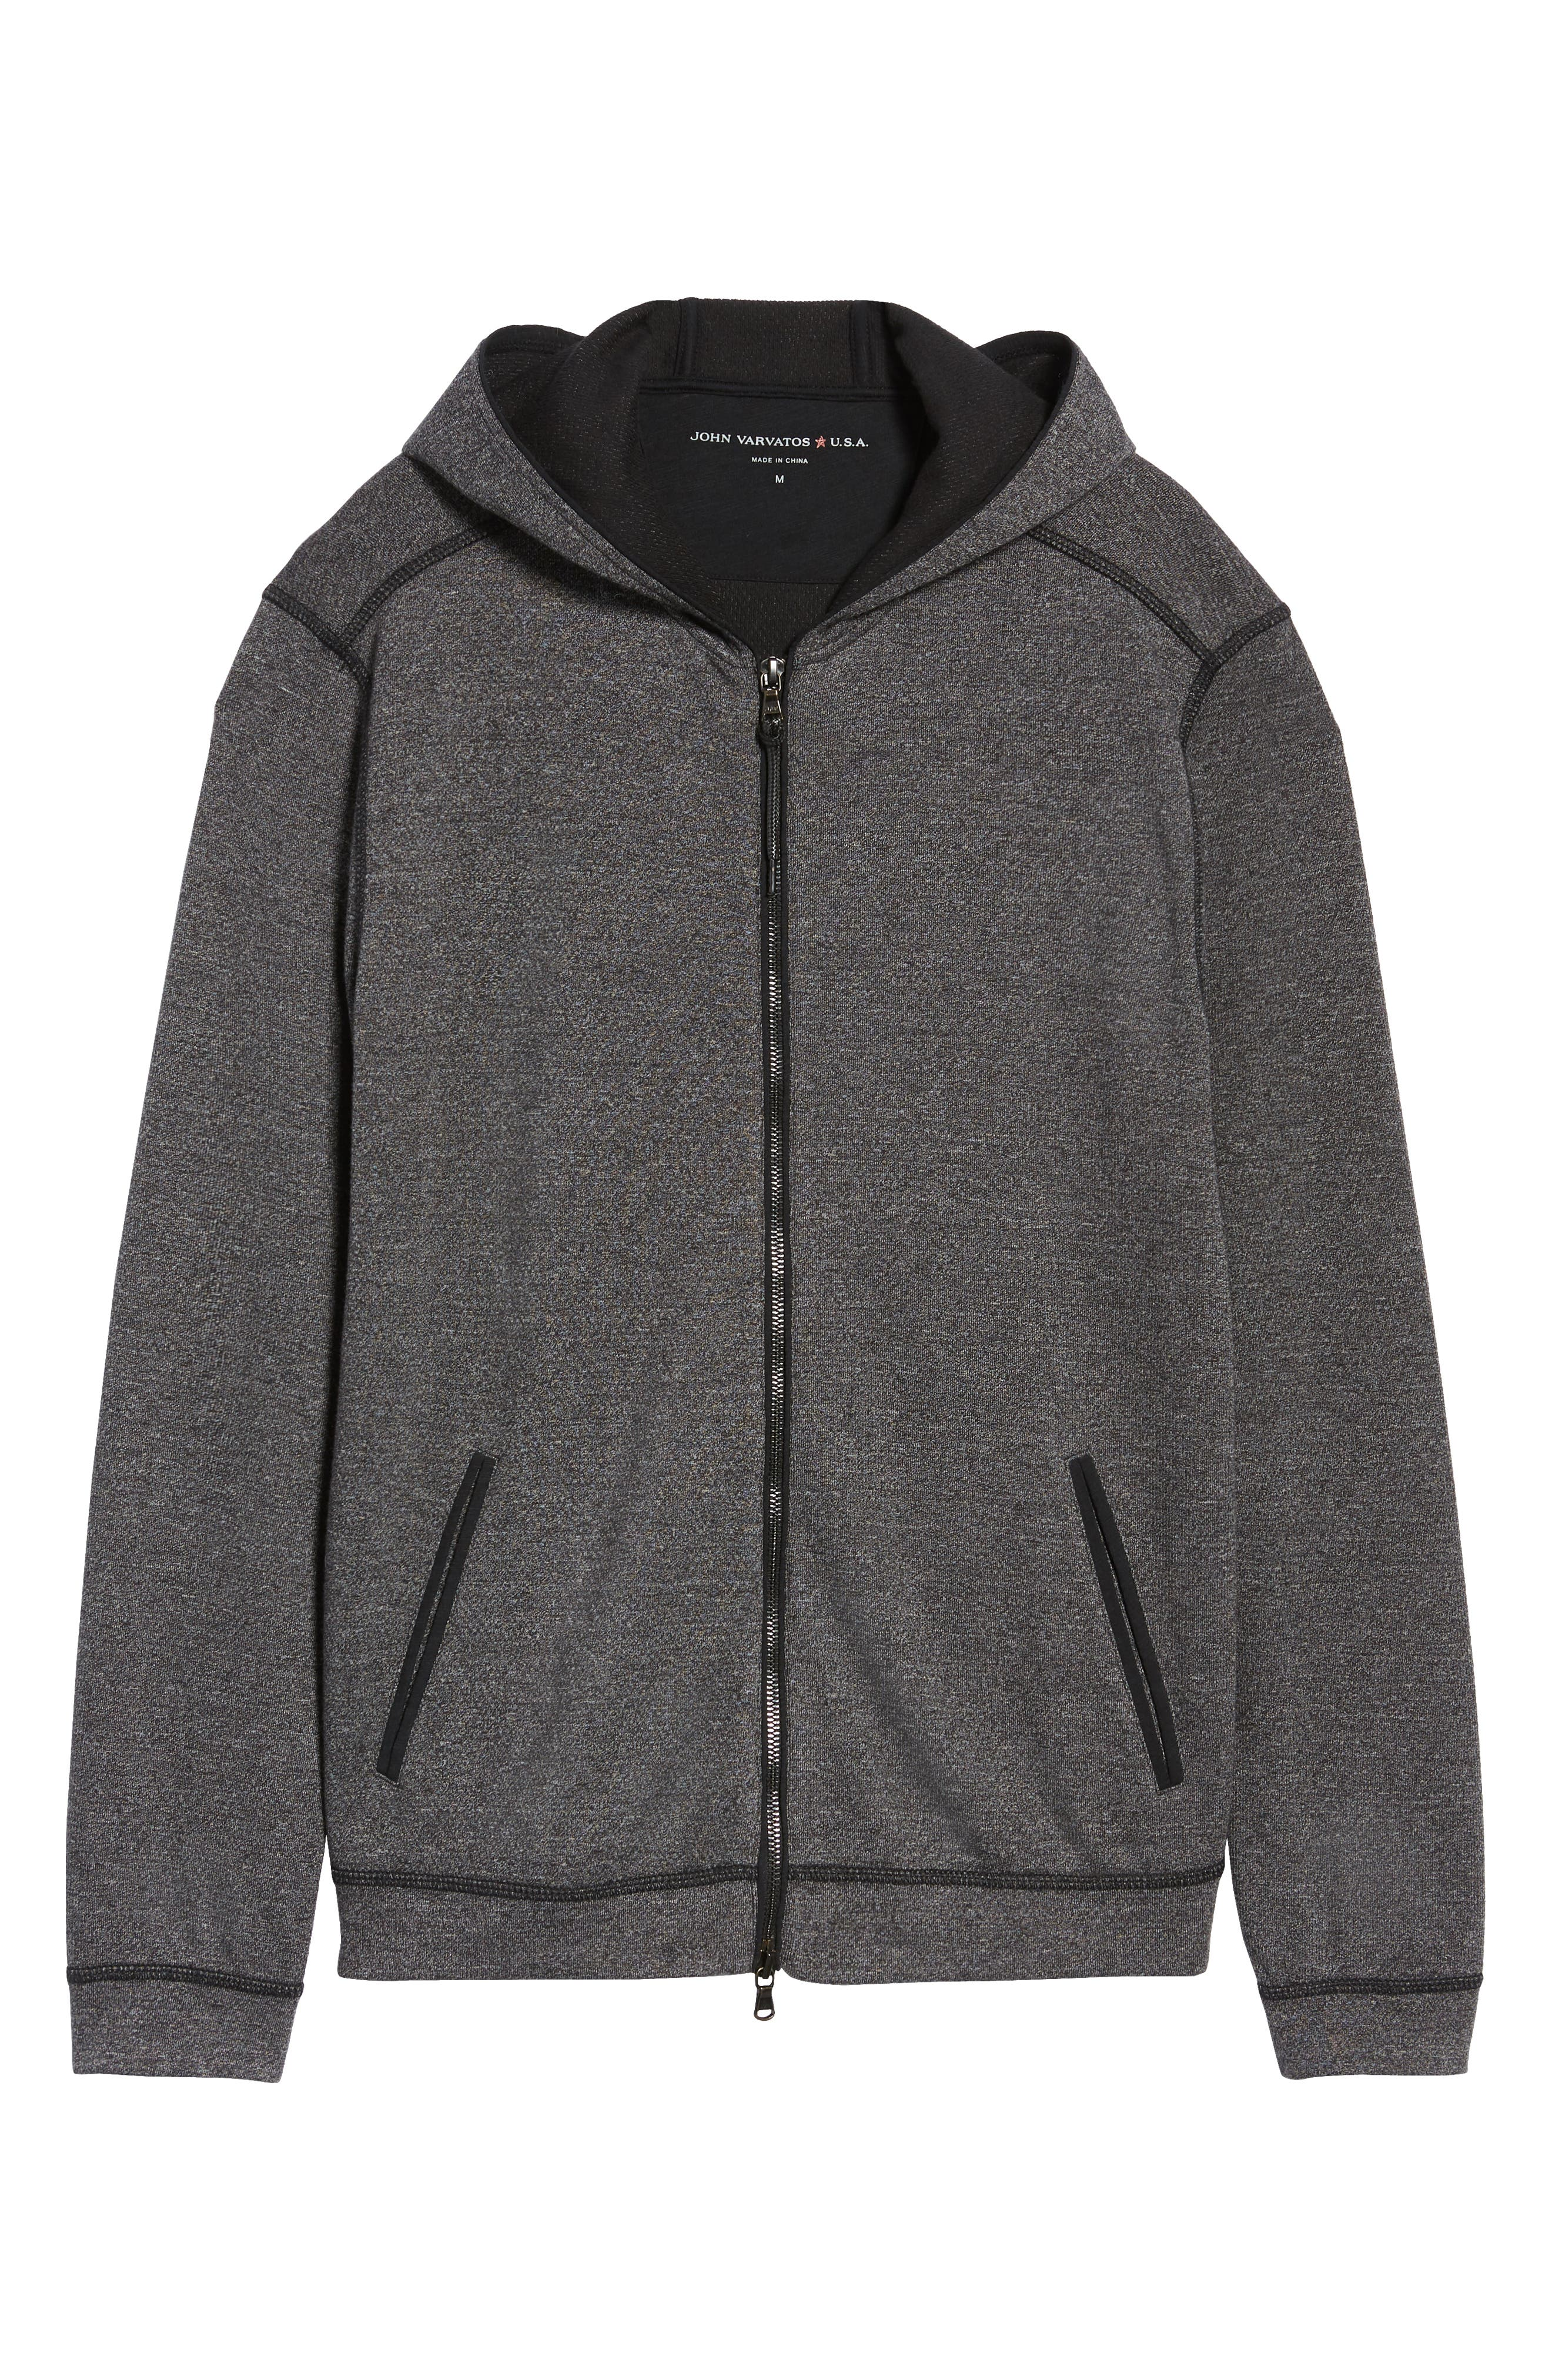 Doubleknit Zip Hoodie,                             Alternate thumbnail 6, color,                             CHARCOAL HEATHER